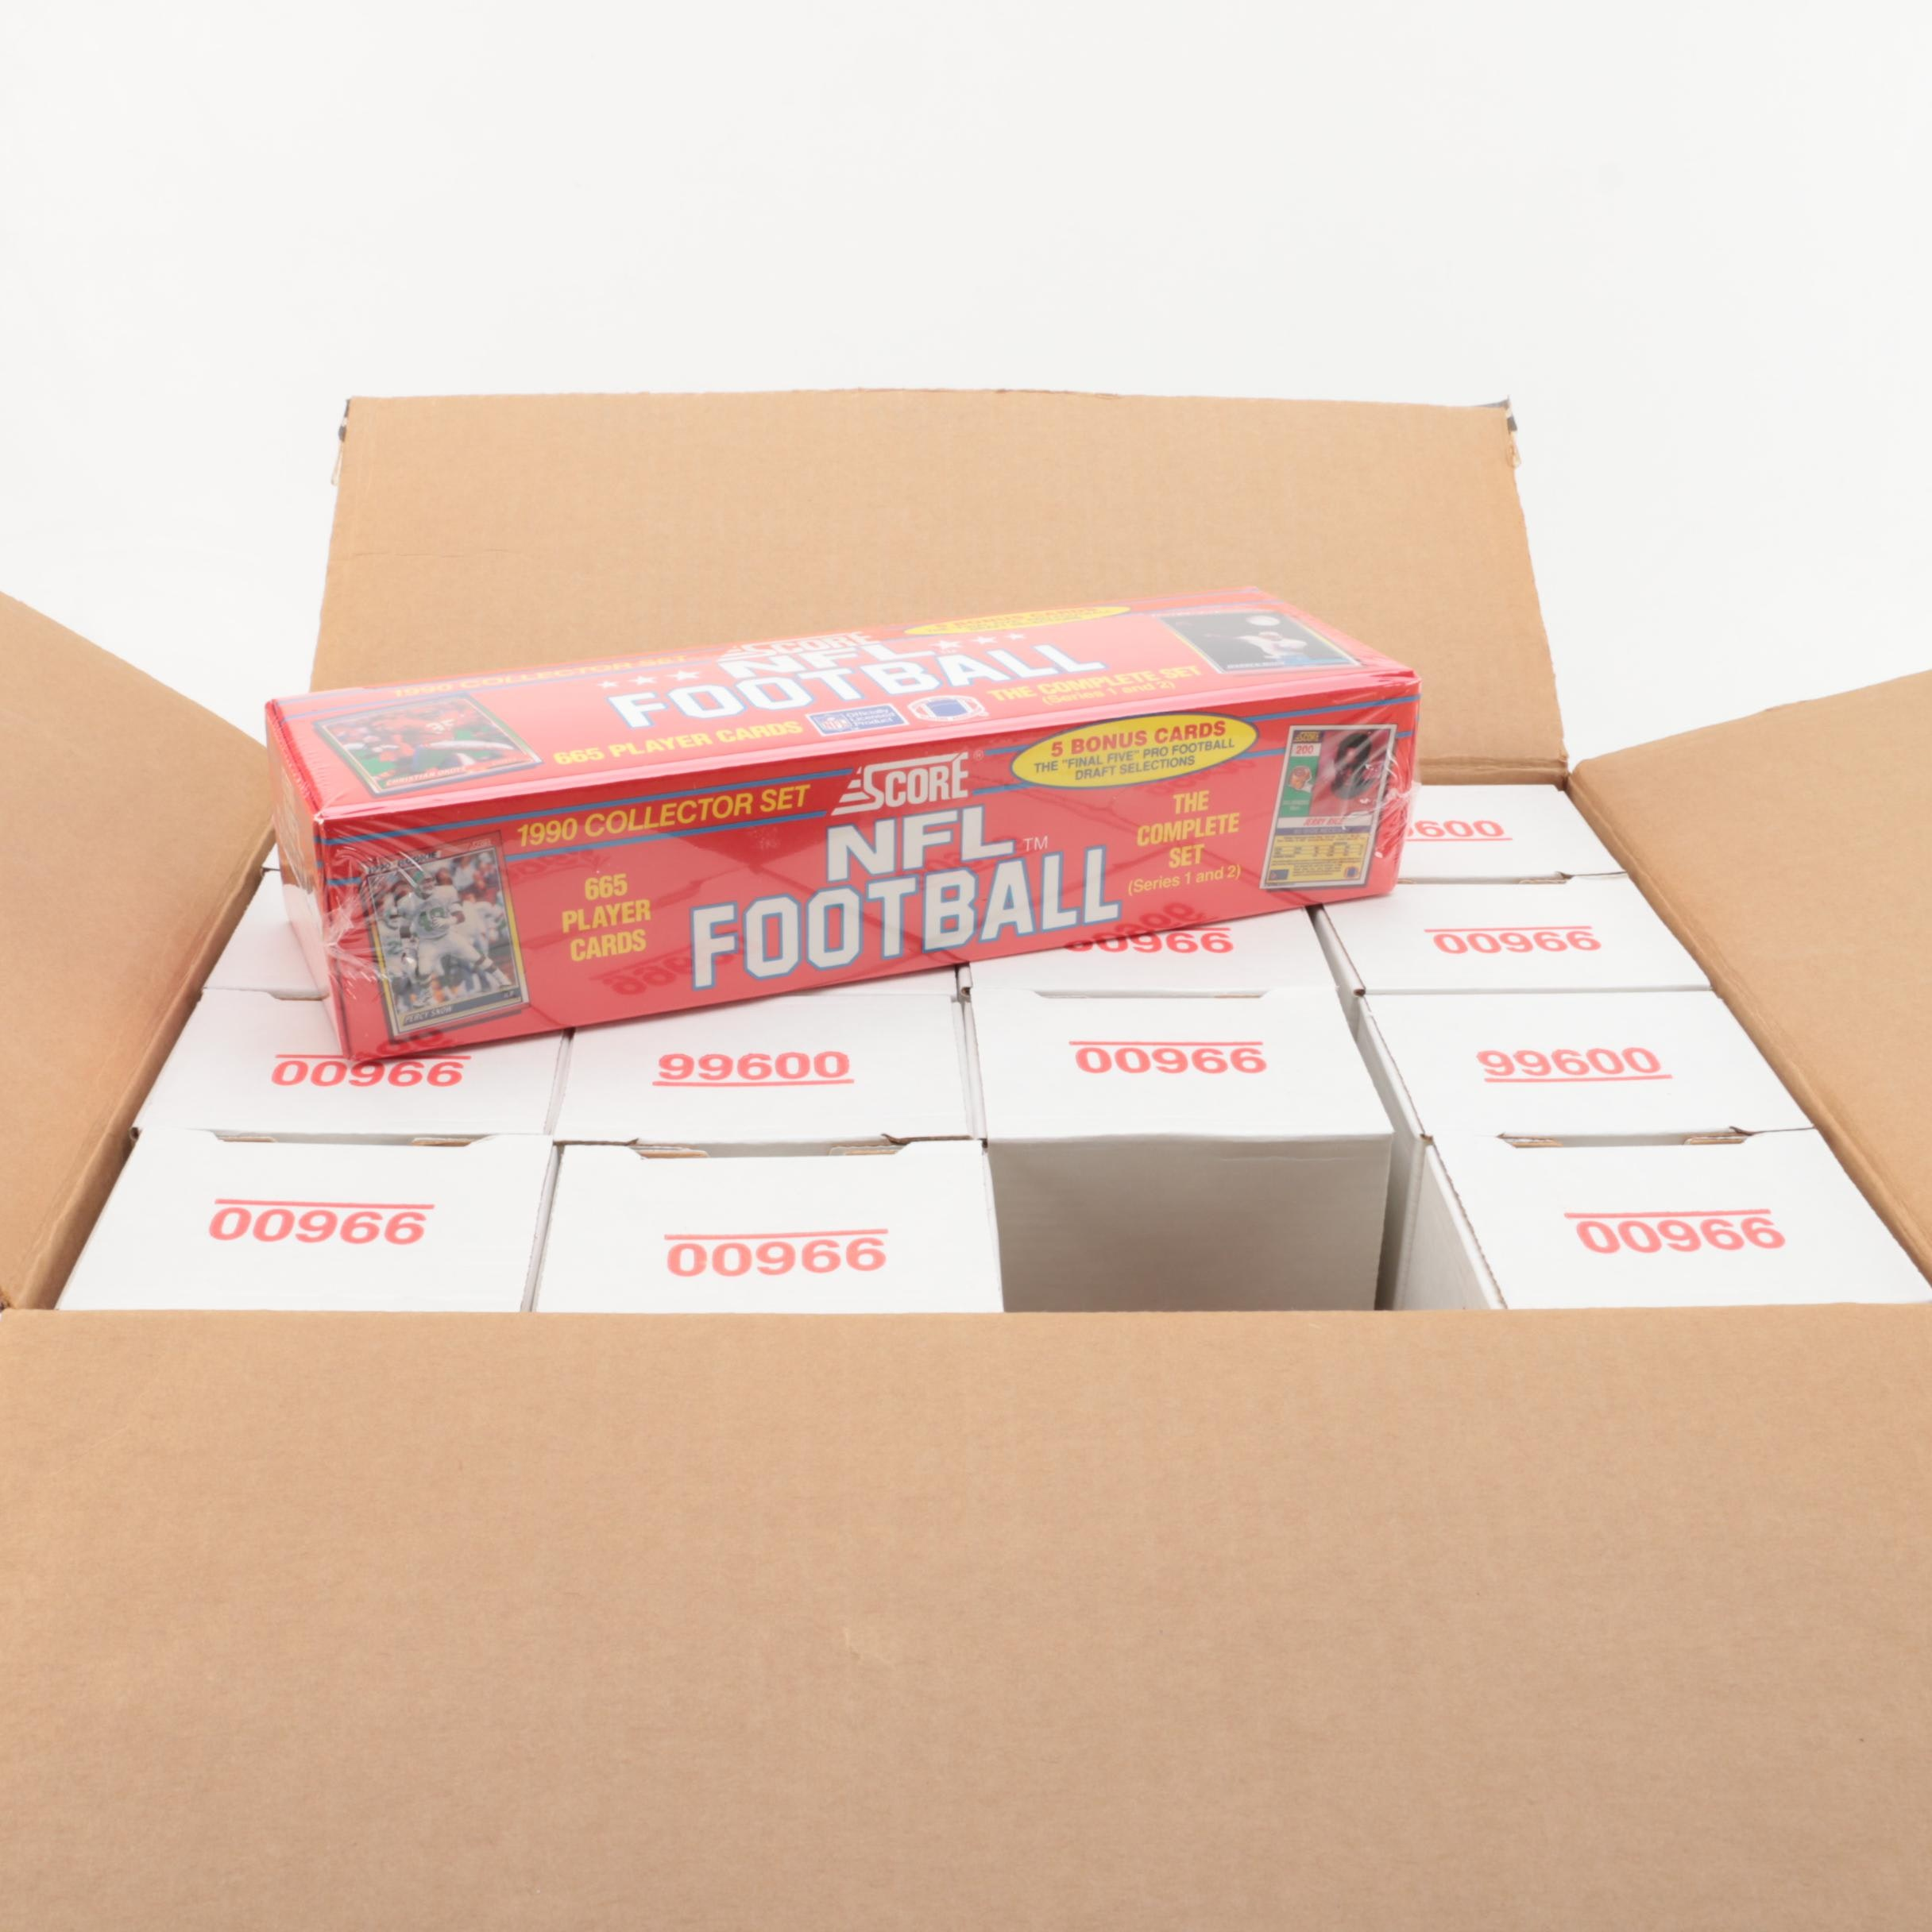 Football Cards Including 1990 Score Collector Set